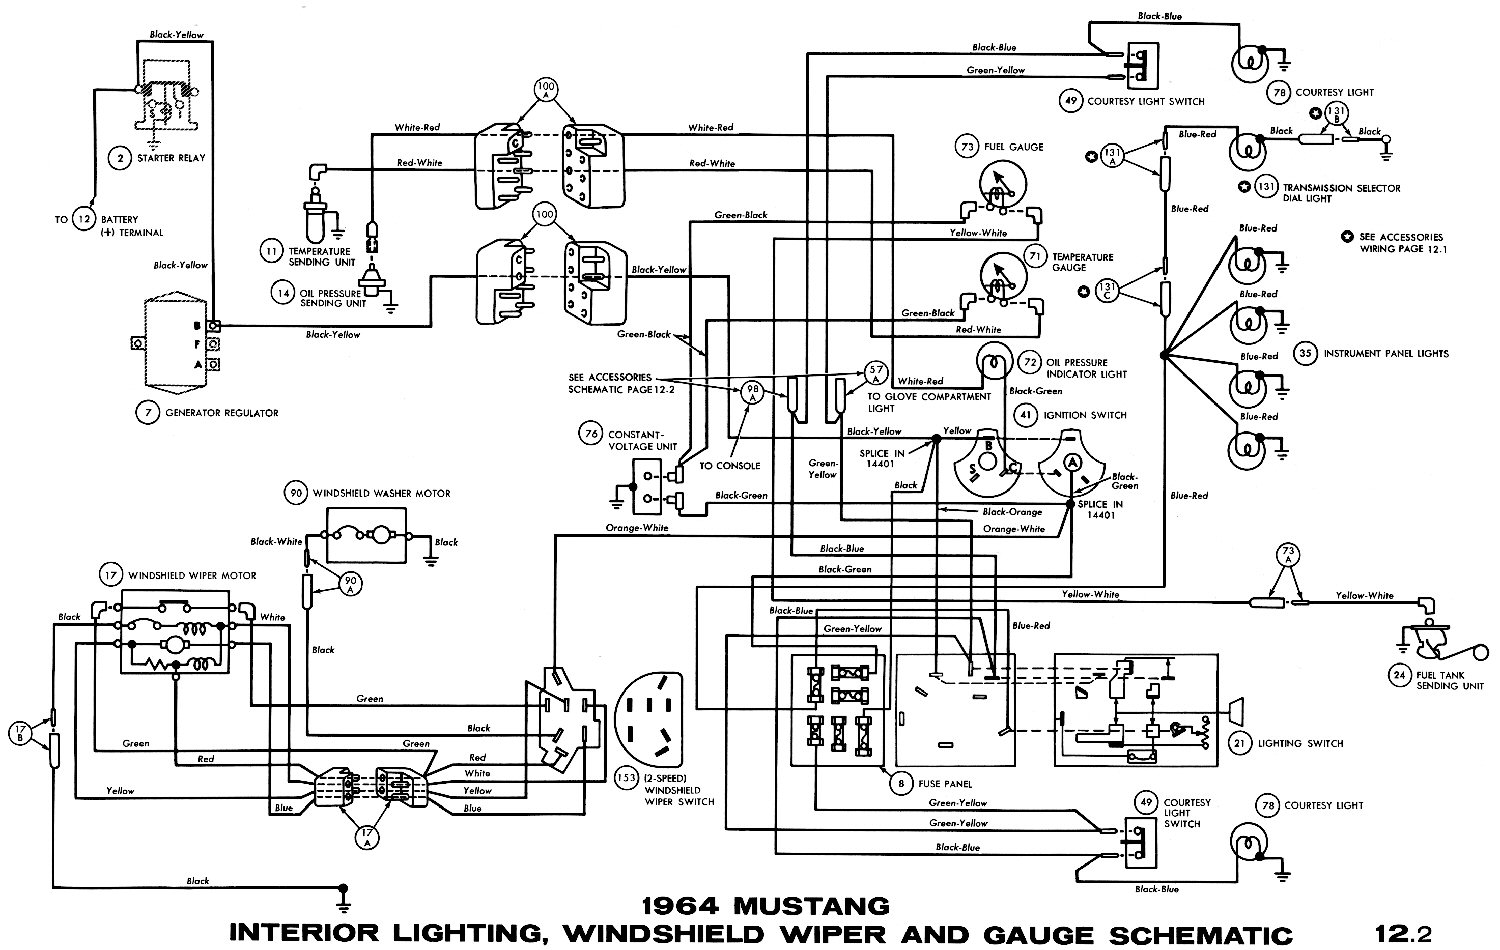 1964k 1964 mustang wiring diagrams average joe restoration ford mustang wiring diagram at gsmx.co